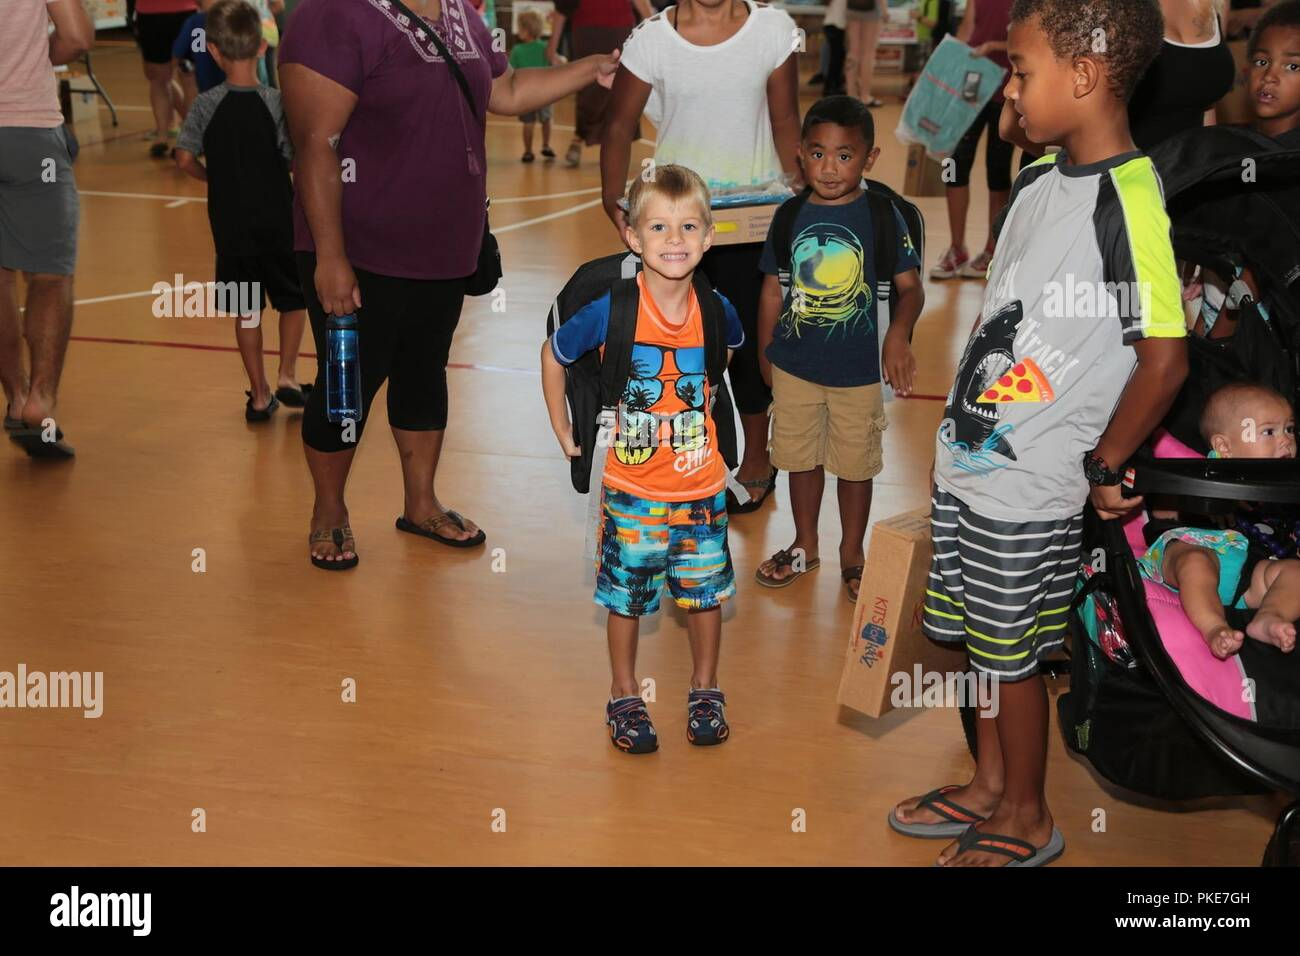 FORT BENNING, Ga. (July 27, 2018) – To accommodate service members with school-age children, Fort Benning Family and Morale, Welfare and Recreation (MWR) held two back-to-school events July 26 and July 27. The main event was child and Youth Services' Back-2-School Bash July 27, where parents and their school-age children lined up around the block to the Youth Services Campus to pick up free school supplies and meet several of the on-post services available to them. The Exceptional Family Member Program (EFMP), Army Community Service, MWR, held a similar but smaller back-to-school luau at Breez - Stock Image